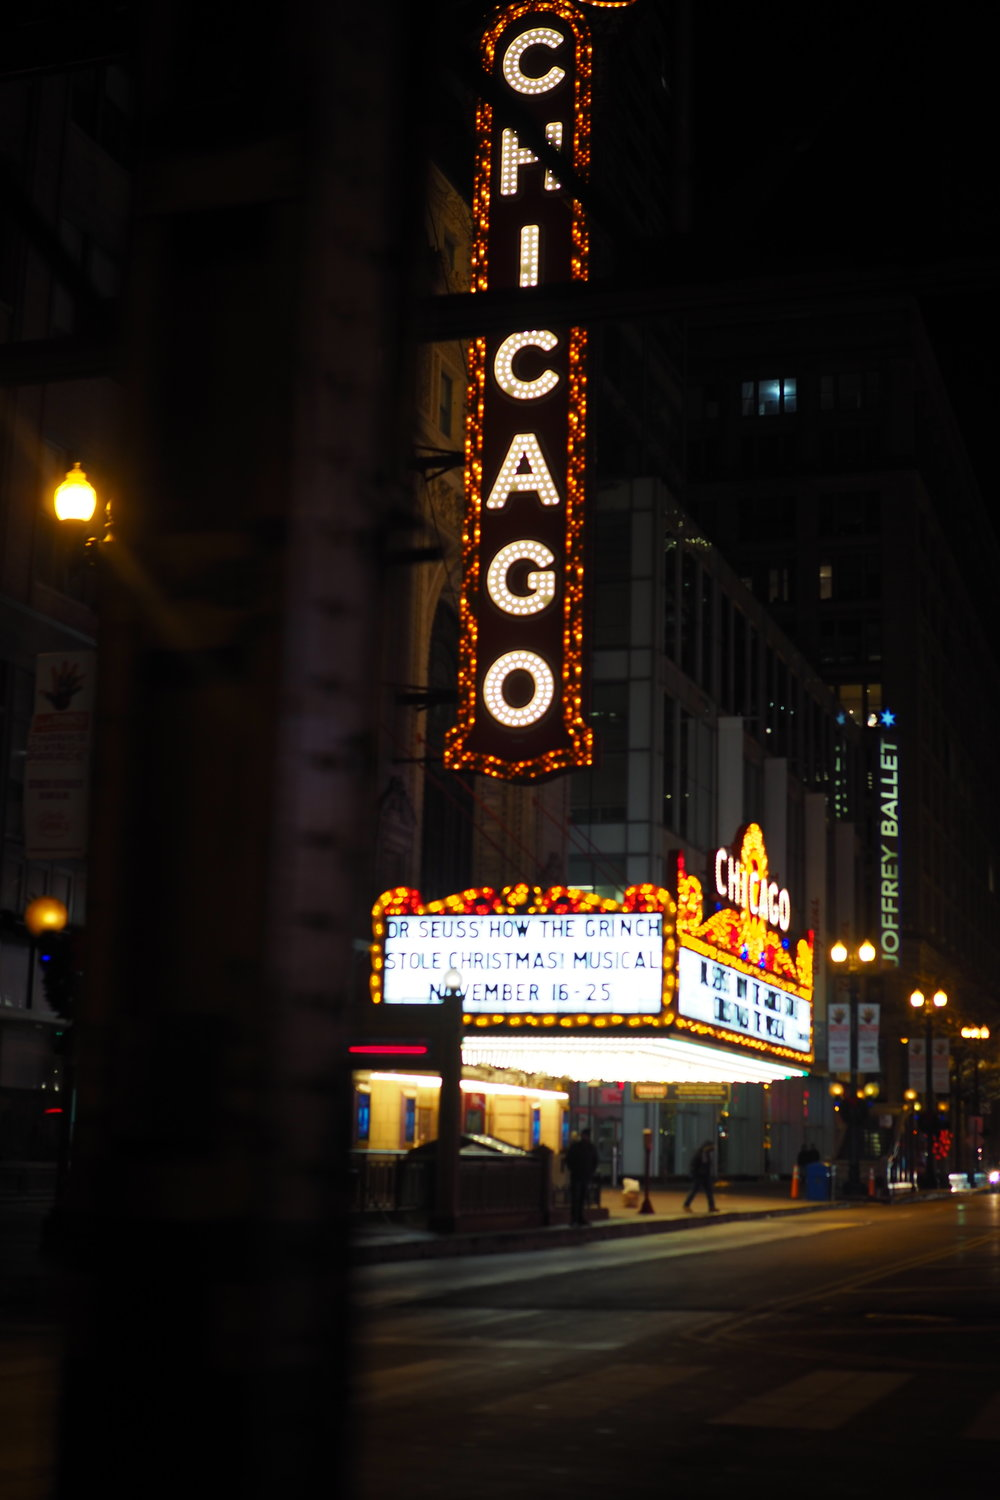 Broadway show anyone? Exploring Chicago at night…